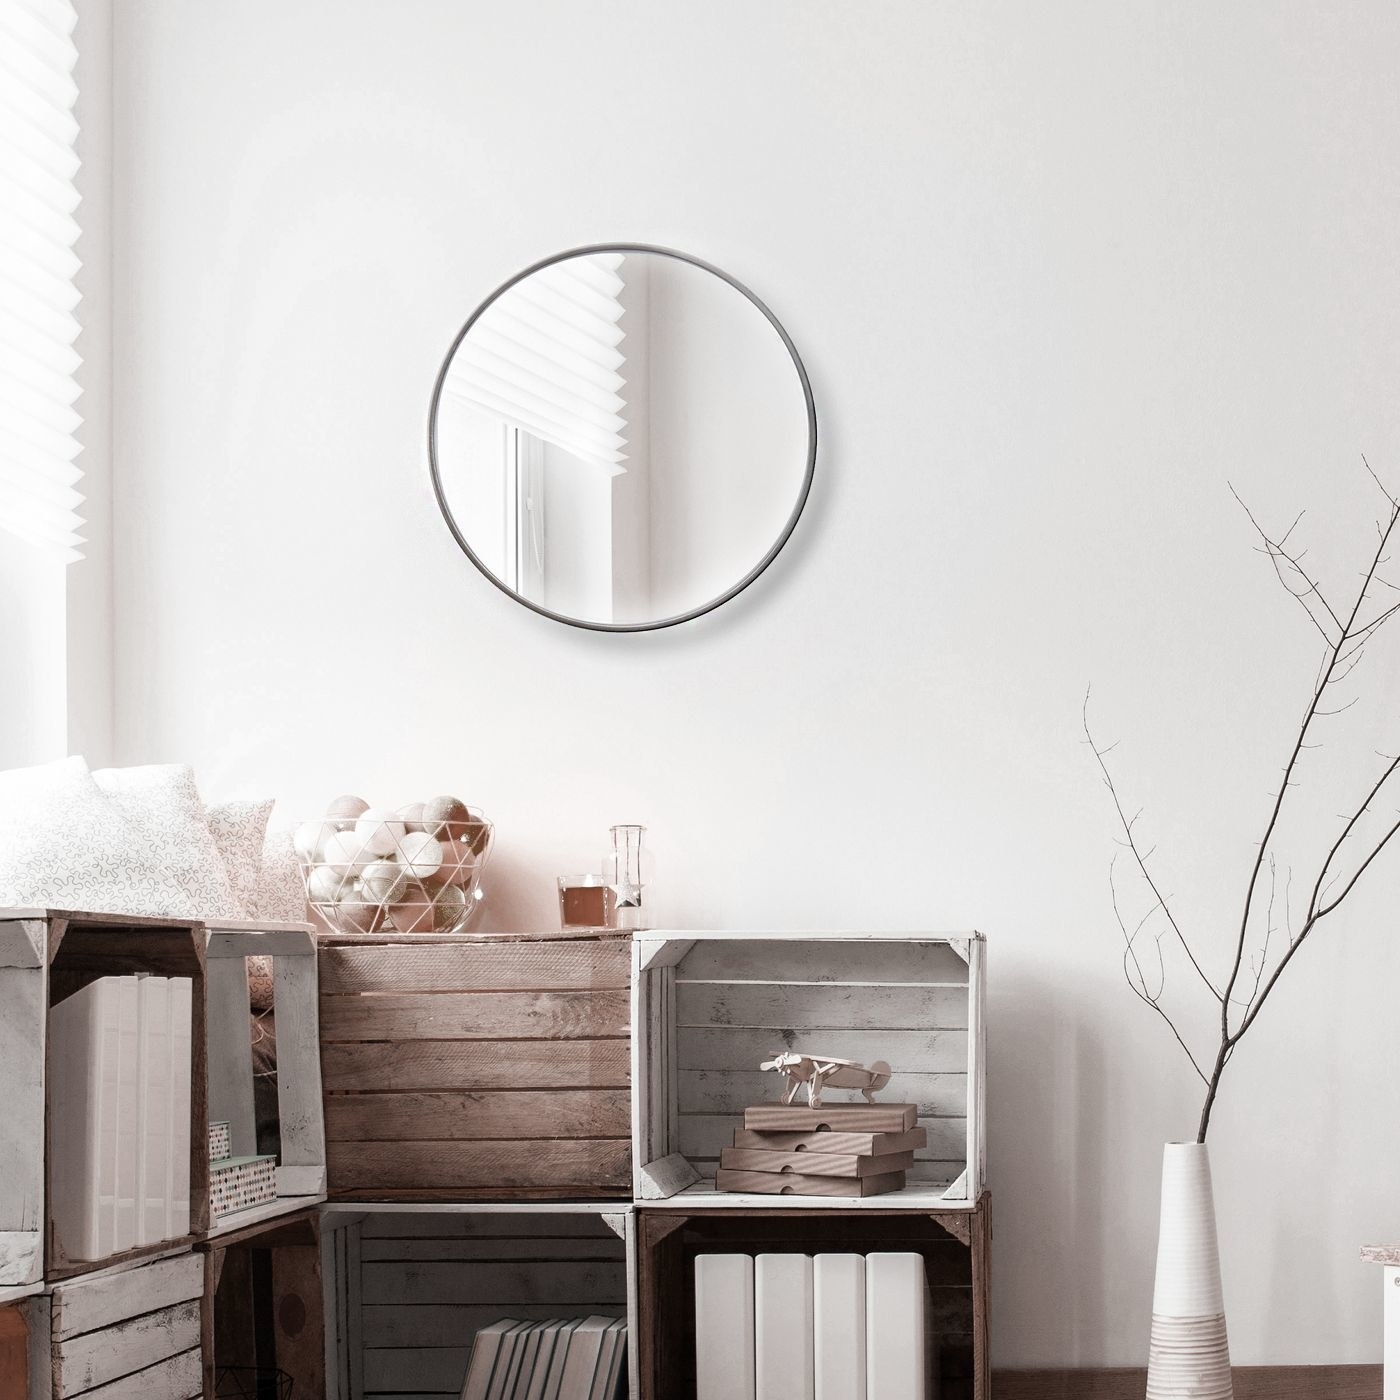 round mirror with silver border on a wall above rustic crates